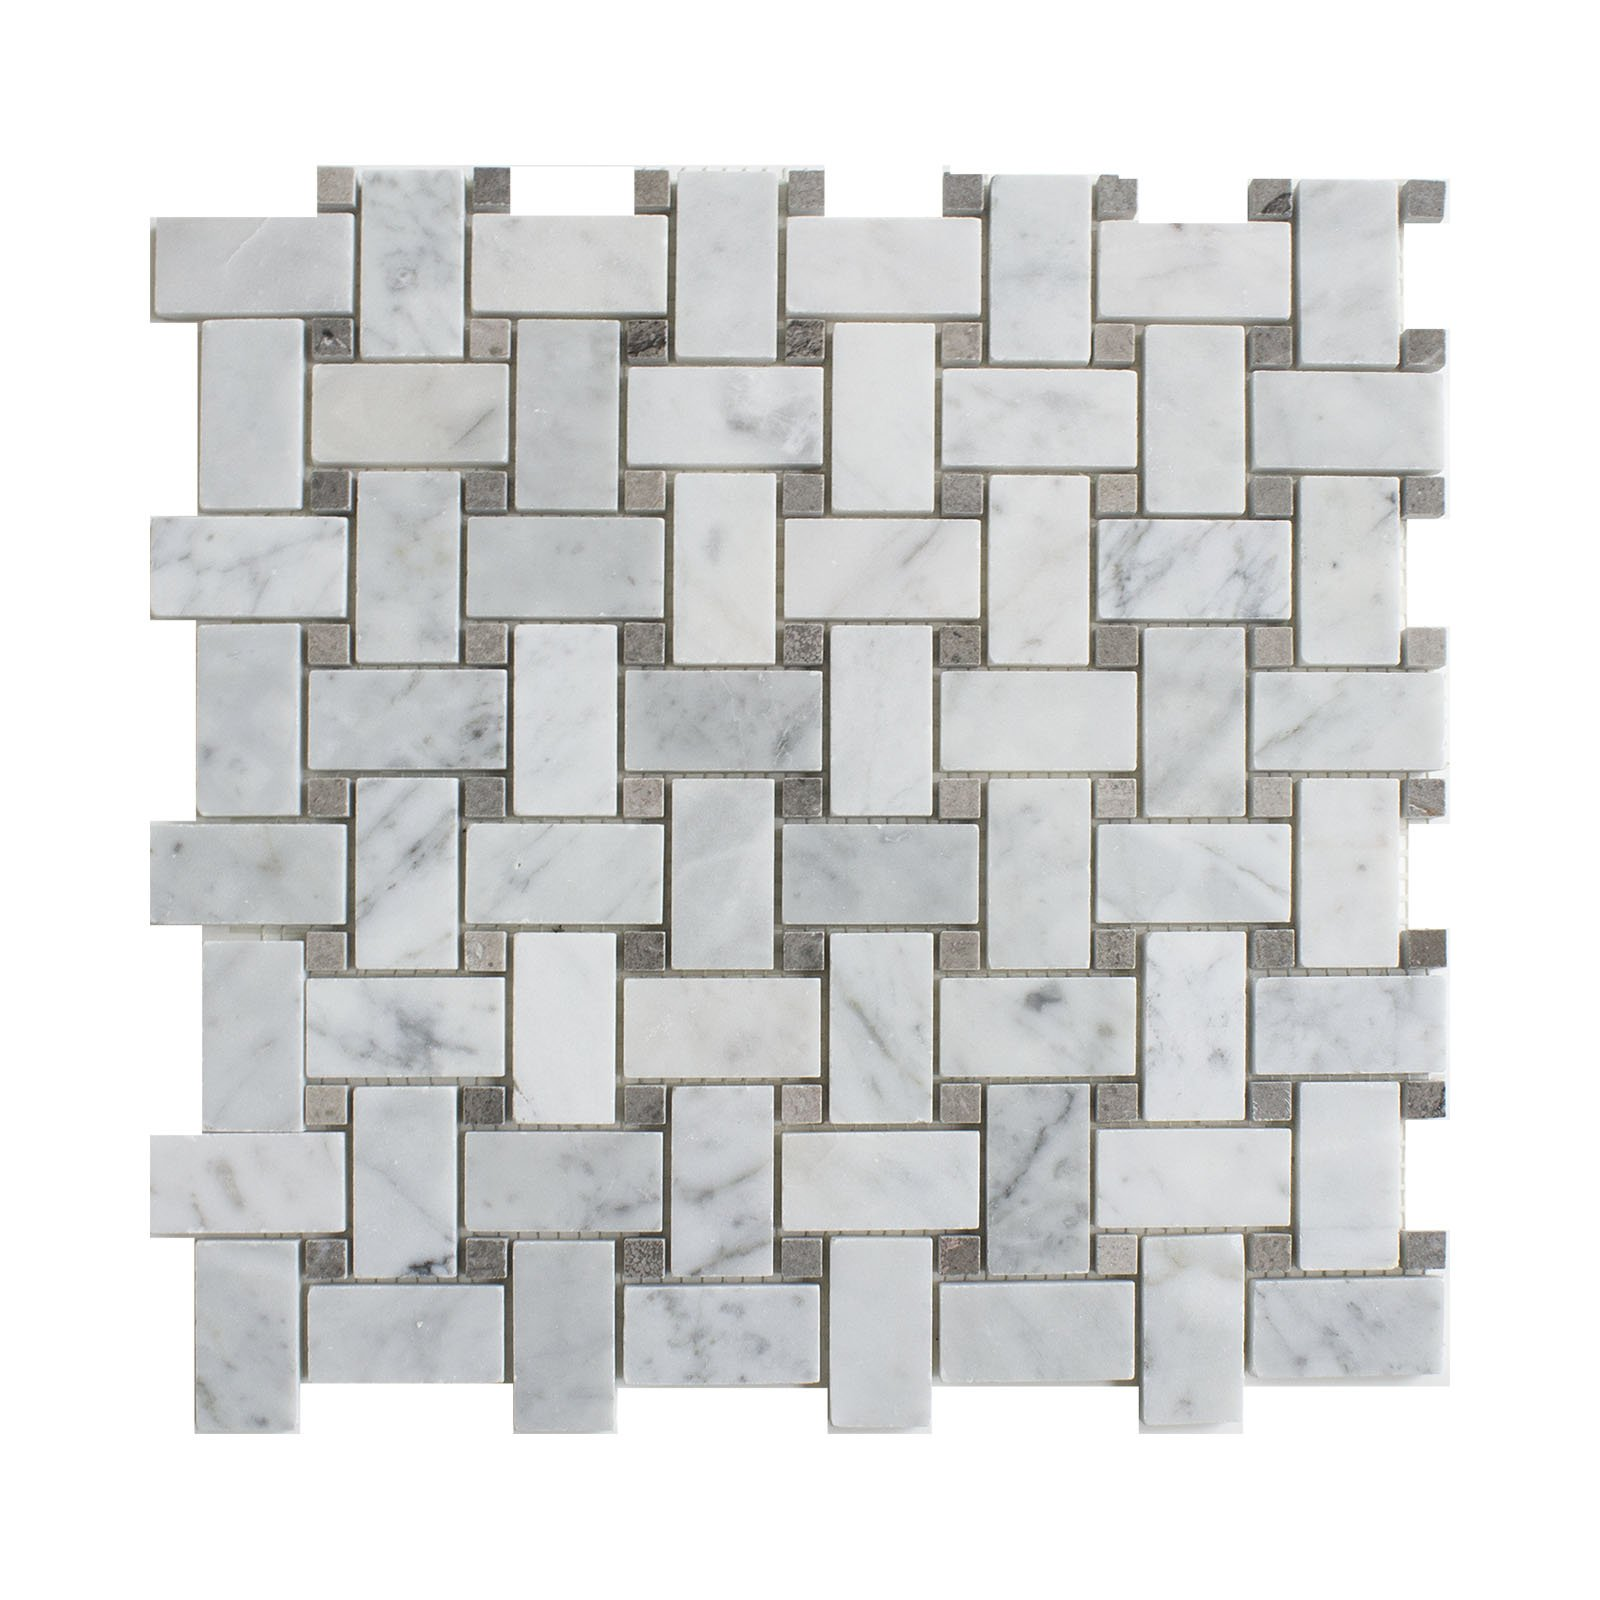 Carrara White Marble Mosaic Tile, CWMM1WEA+G-H, Chip Size 1''X2'' Basketweave with Grey Dot, 12''X12''X5/16, Honed (Box of 5 Sheets) by CWM